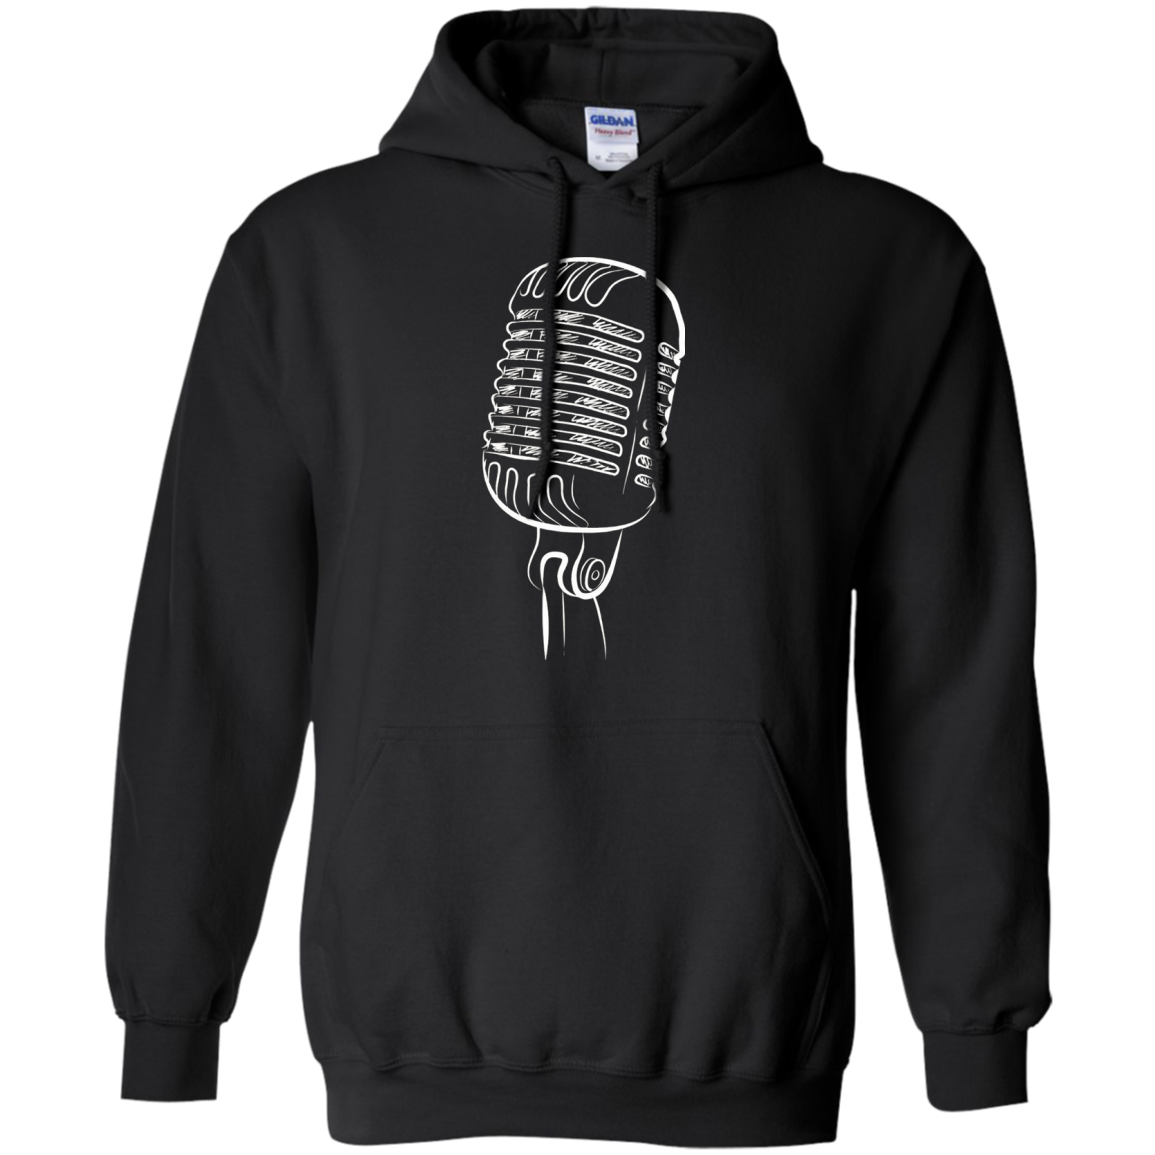 Microphone tee shirt for singers